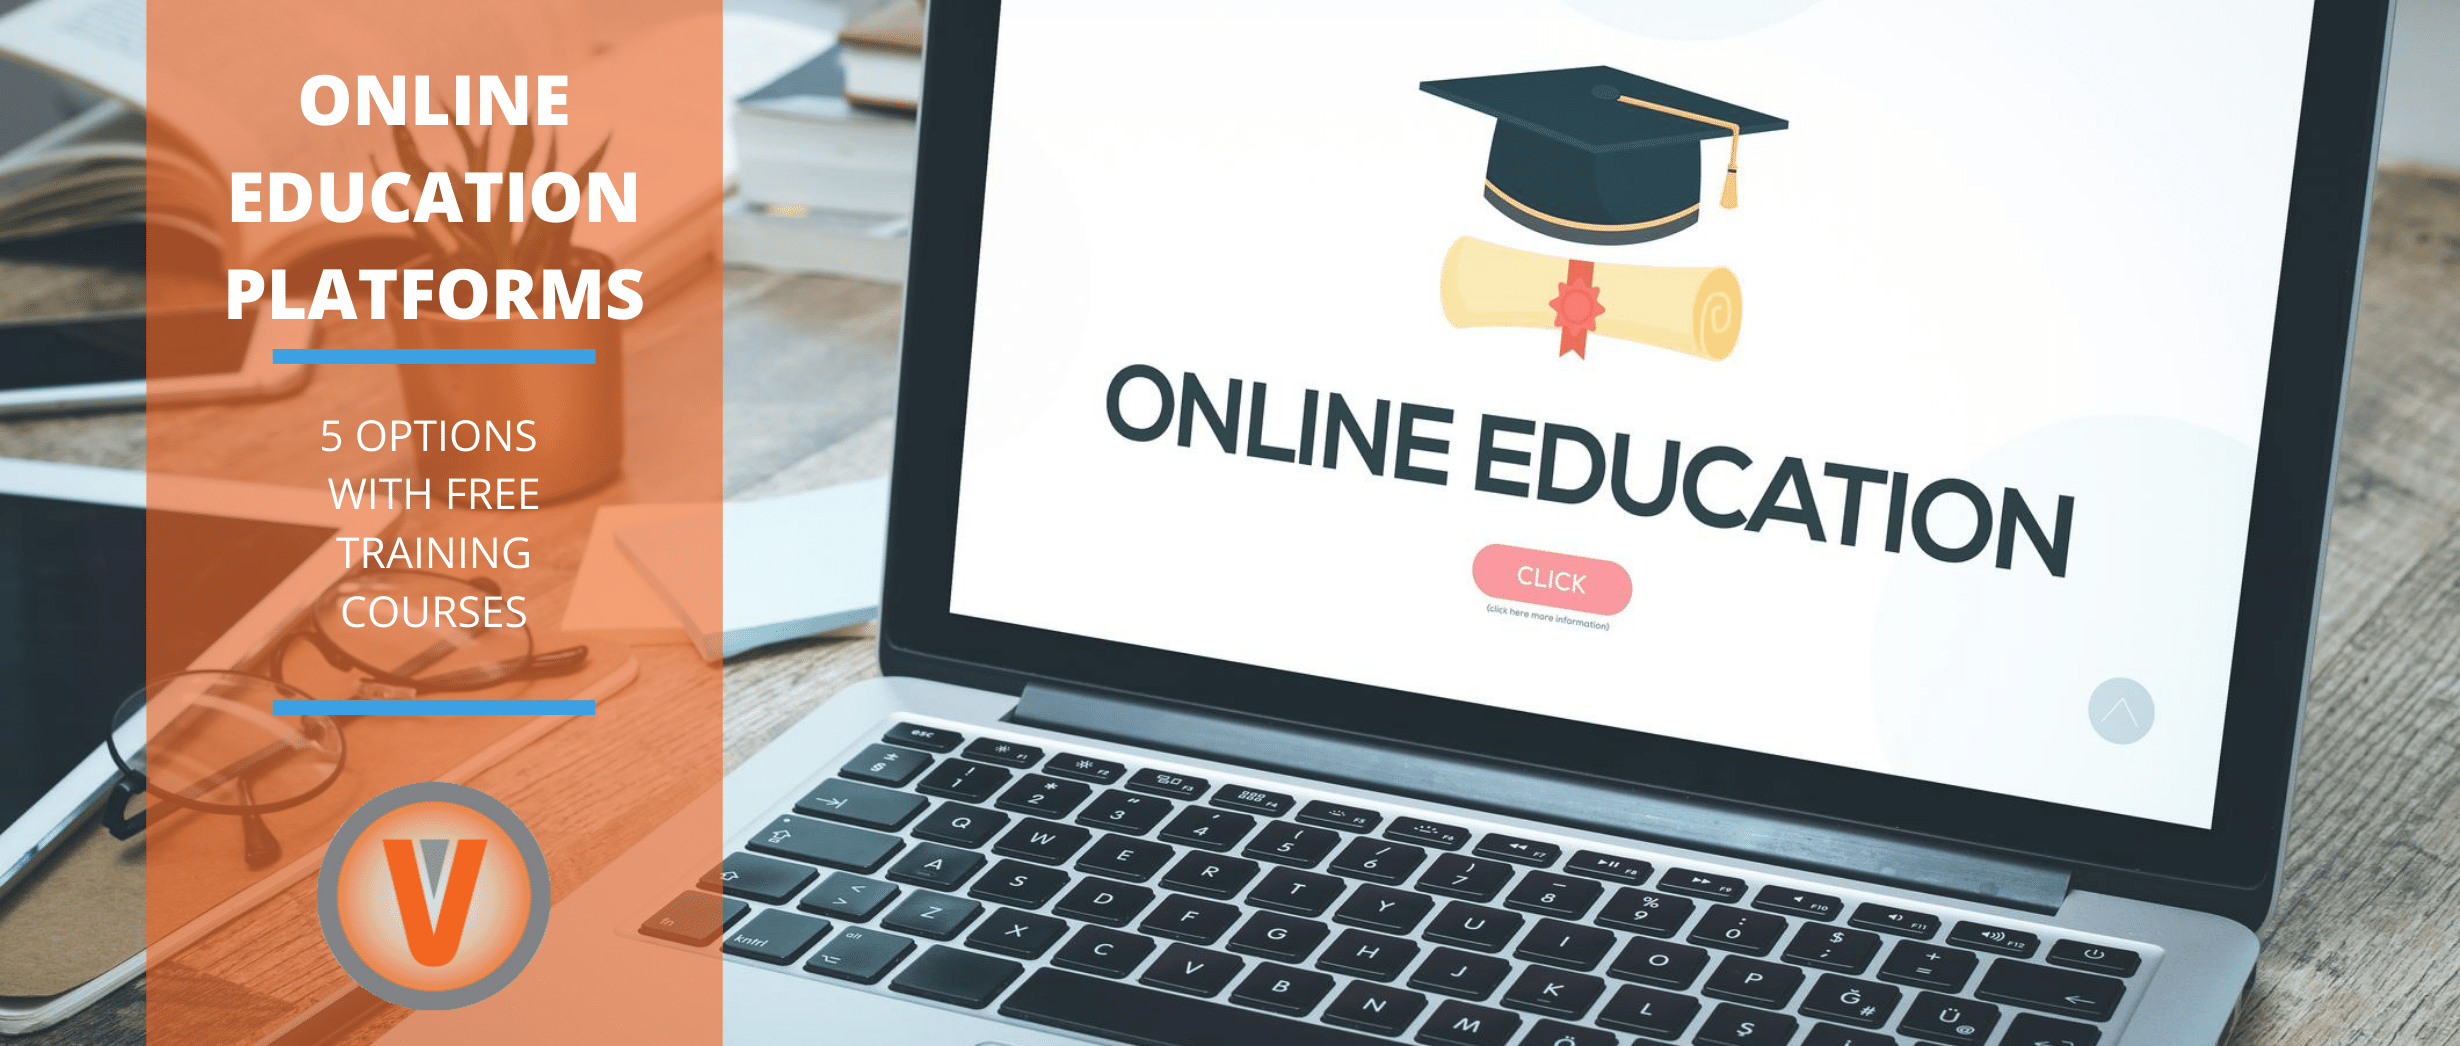 Online Education Platforms: 5 Options with Free Training Courses